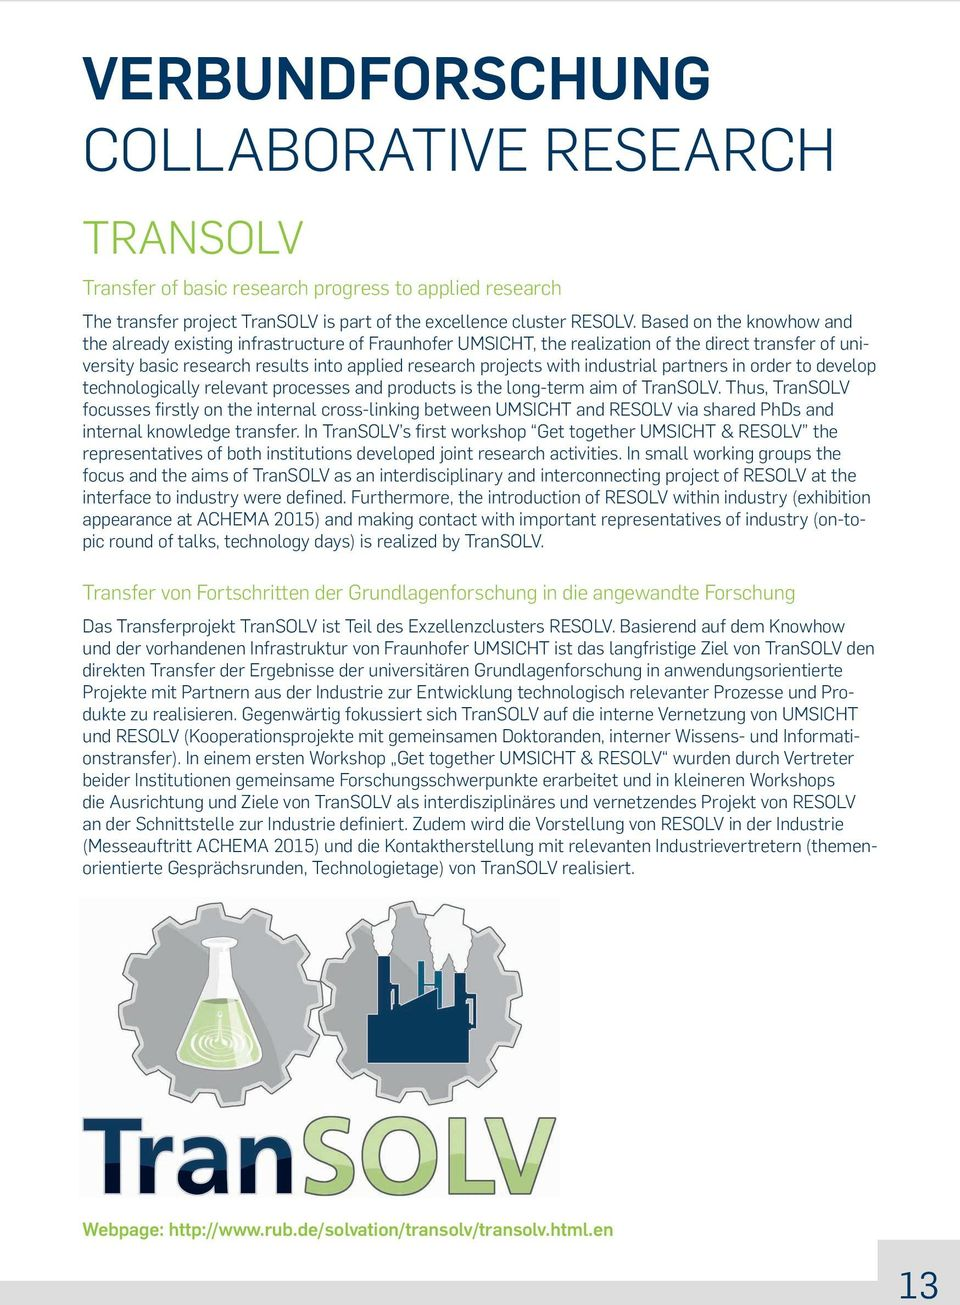 industrial partners in order to develop technologically relevant processes and products is the long-term aim of TranSOLV.